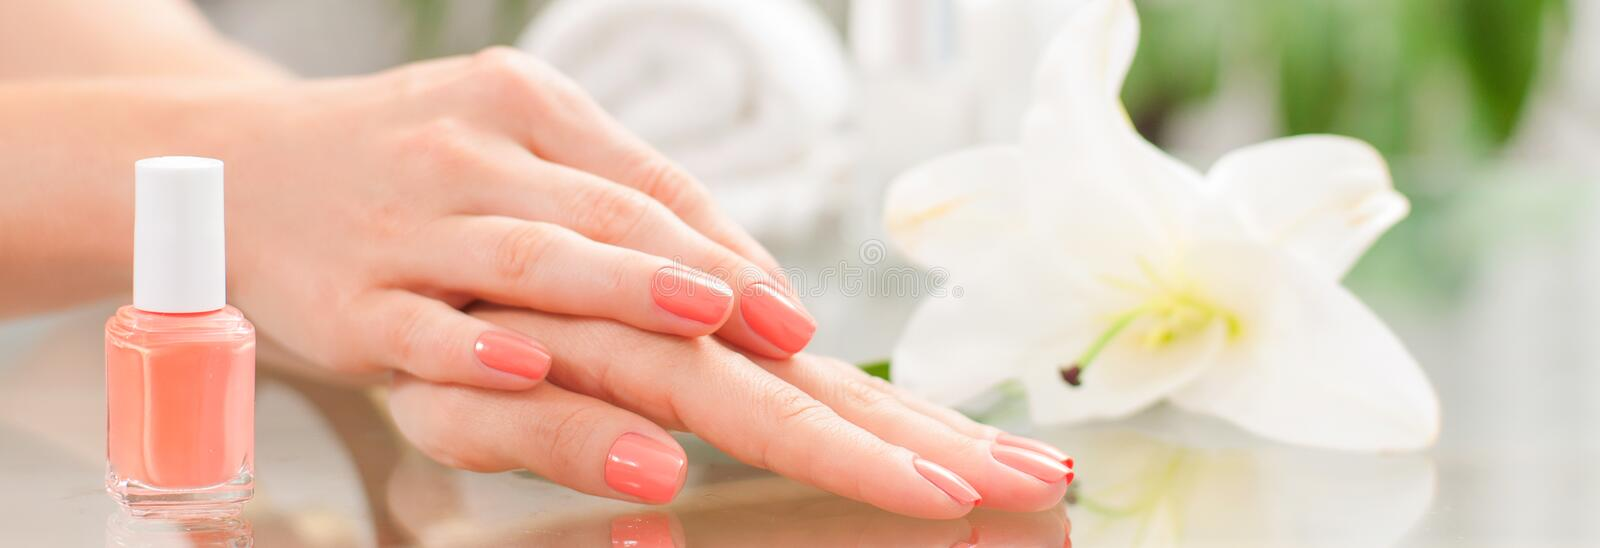 Manicure concept. Beautiful woman& x27;s hands with perfect manicure at beauty salon. royalty free stock image